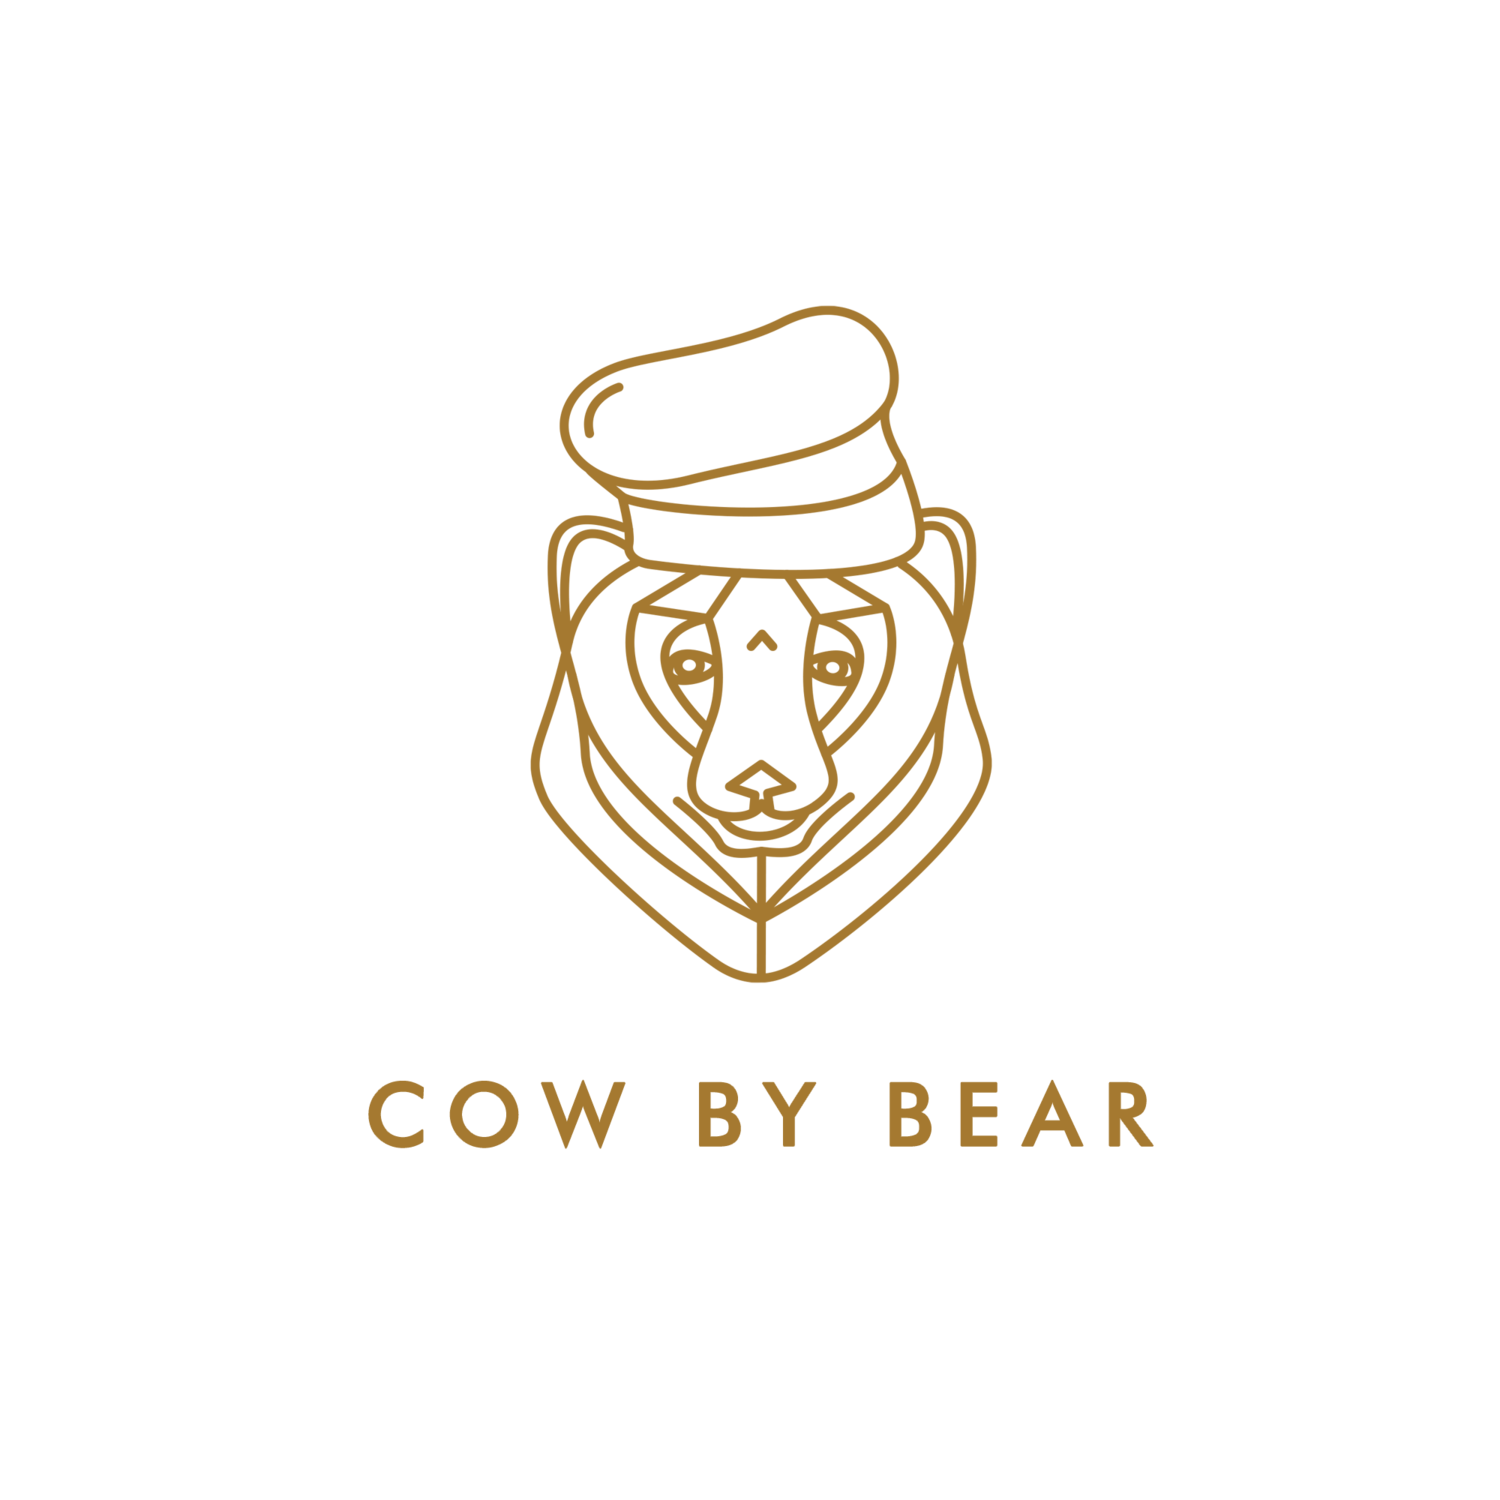 Cow by Bear Savannah